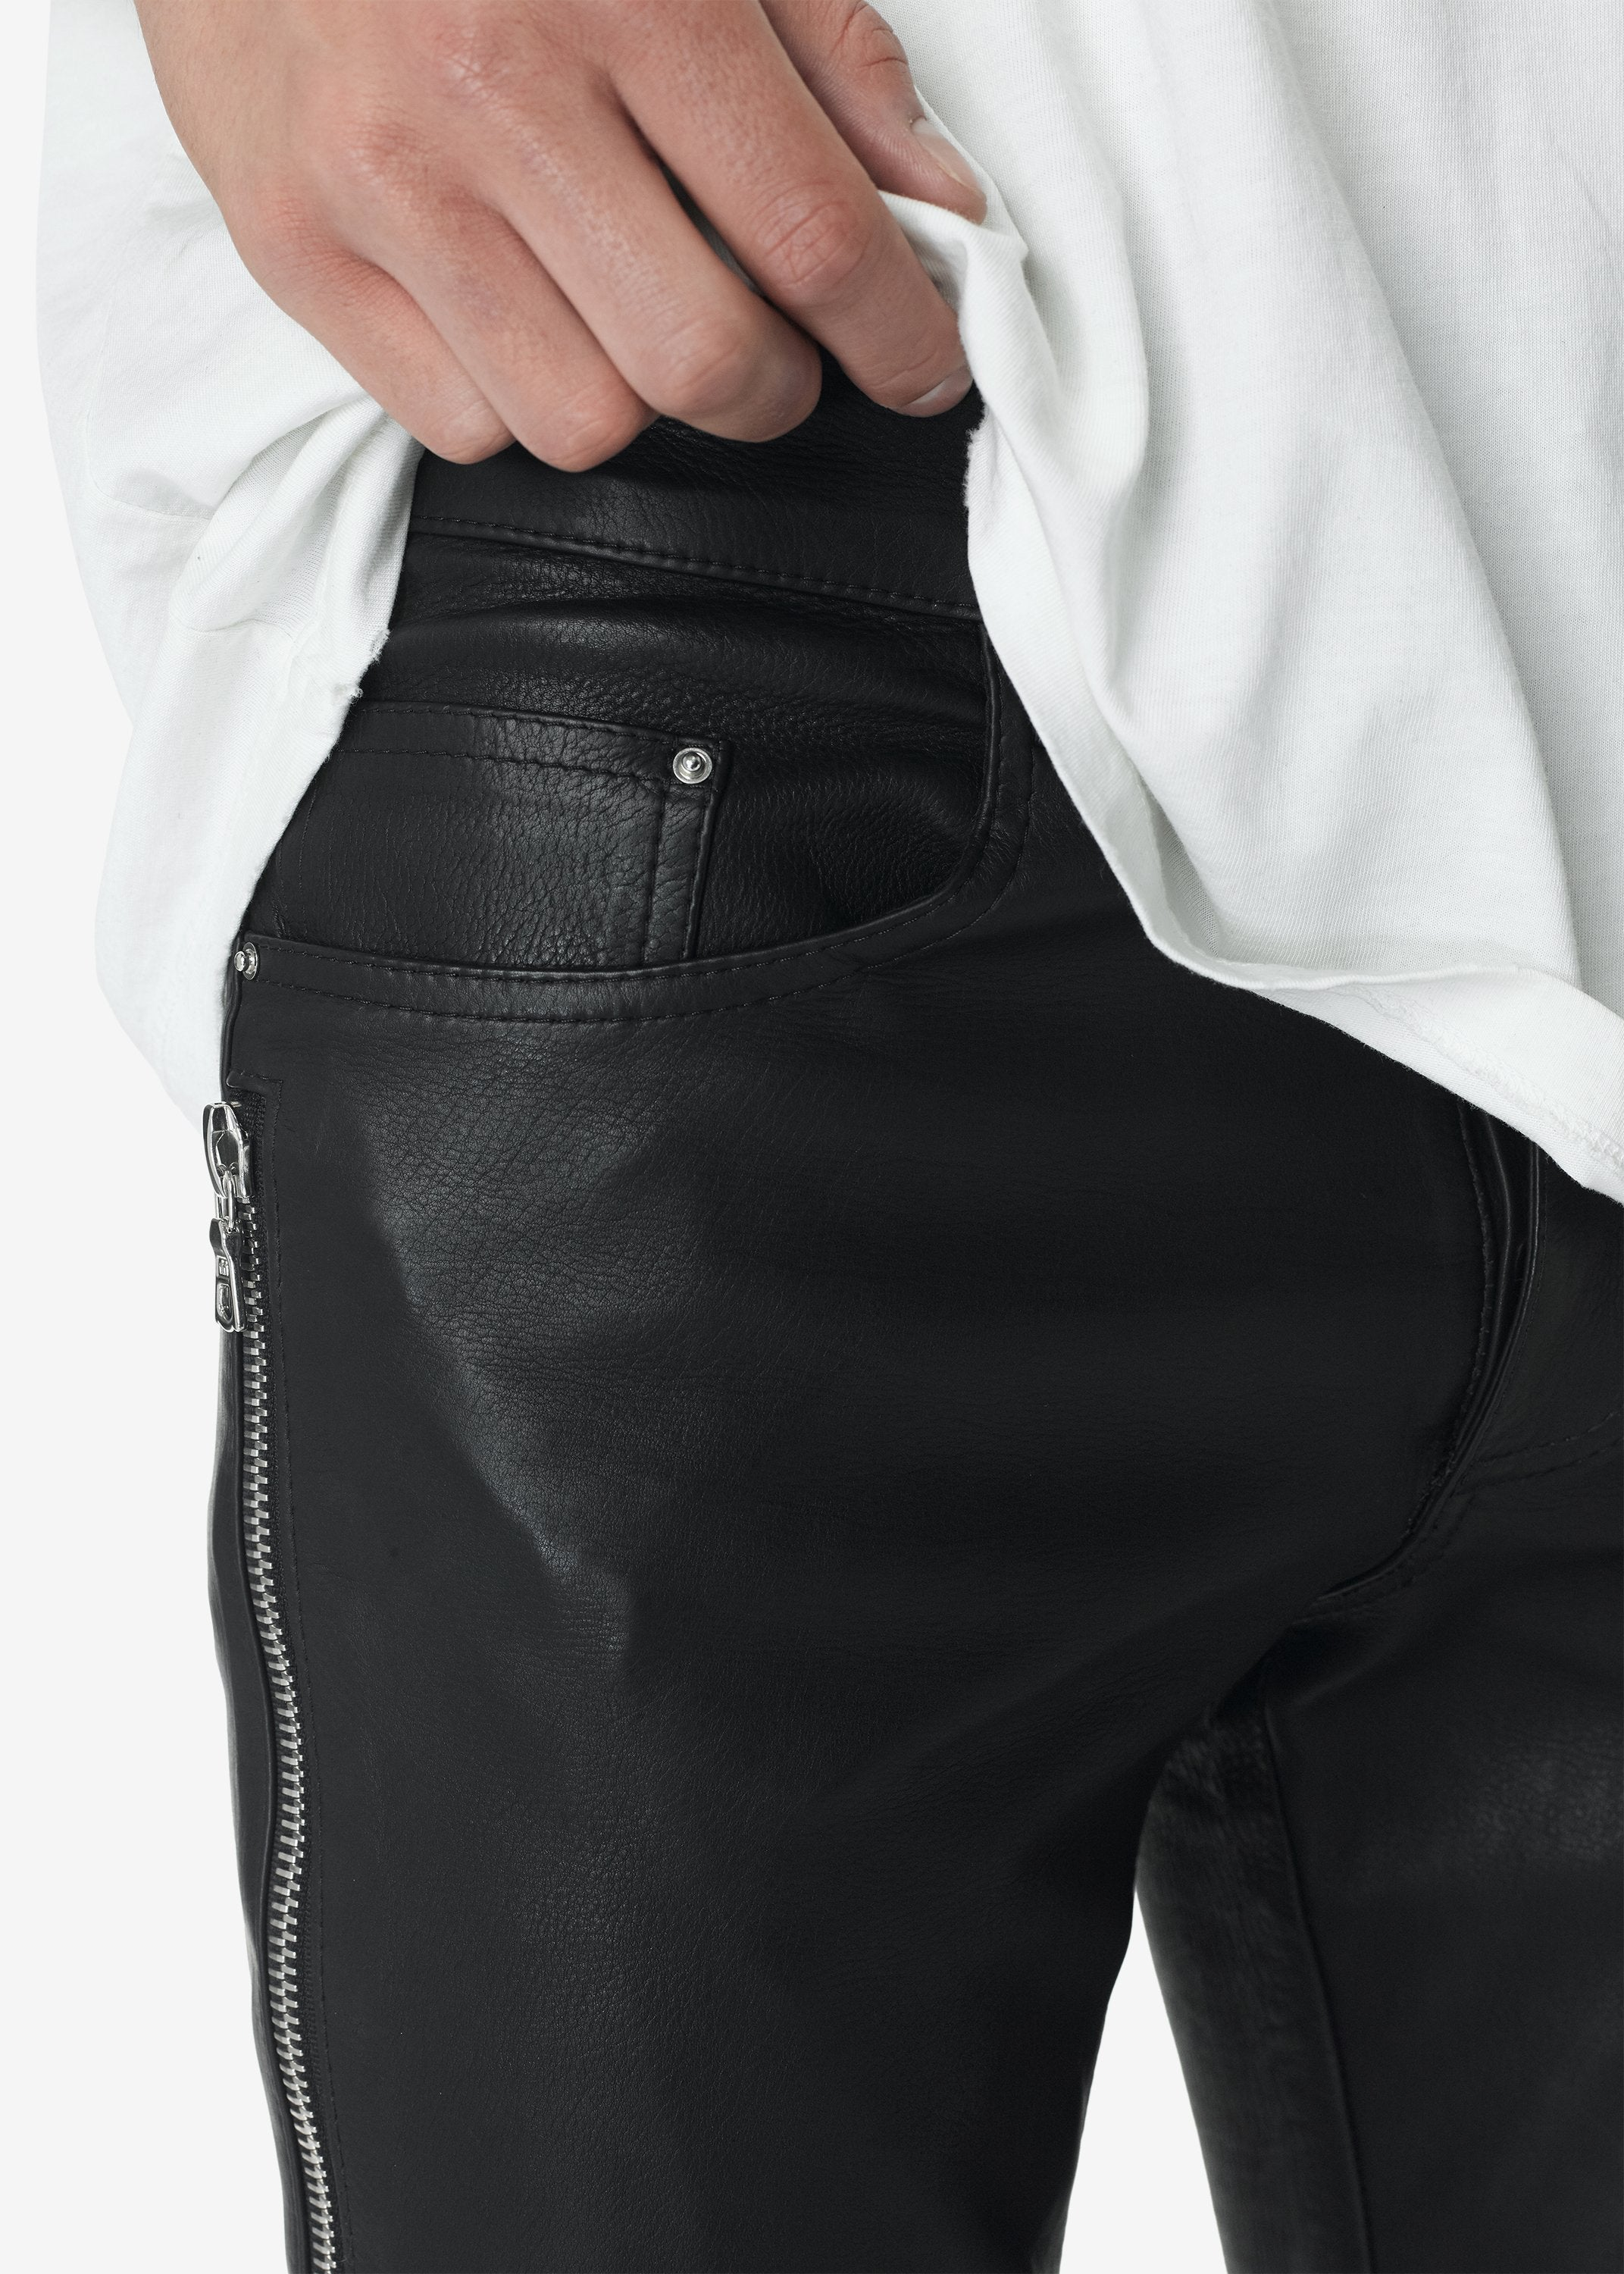 mx2-leather-pants-black-silver-image-4